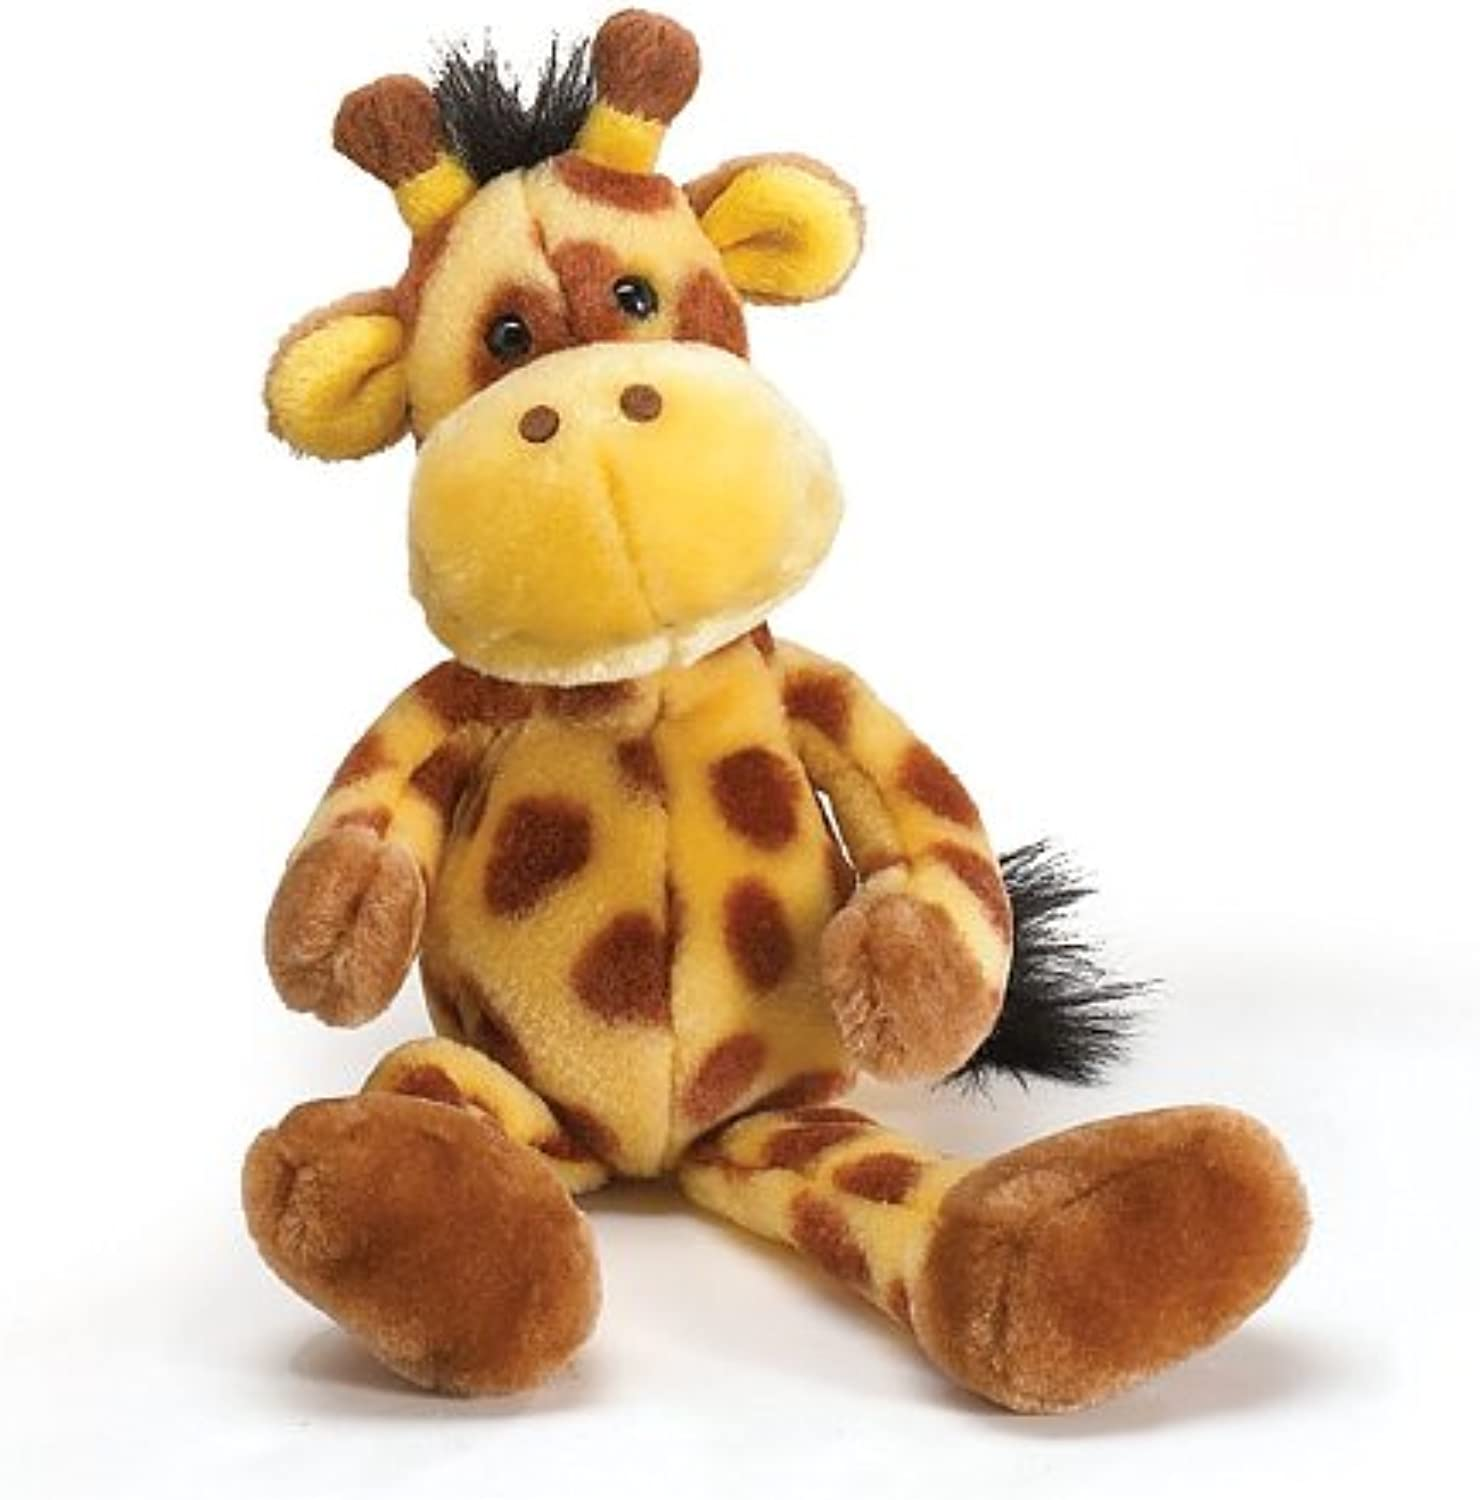 Little Geri the Giraffe (11) Plush Stuffed Animal by Burton & Burton